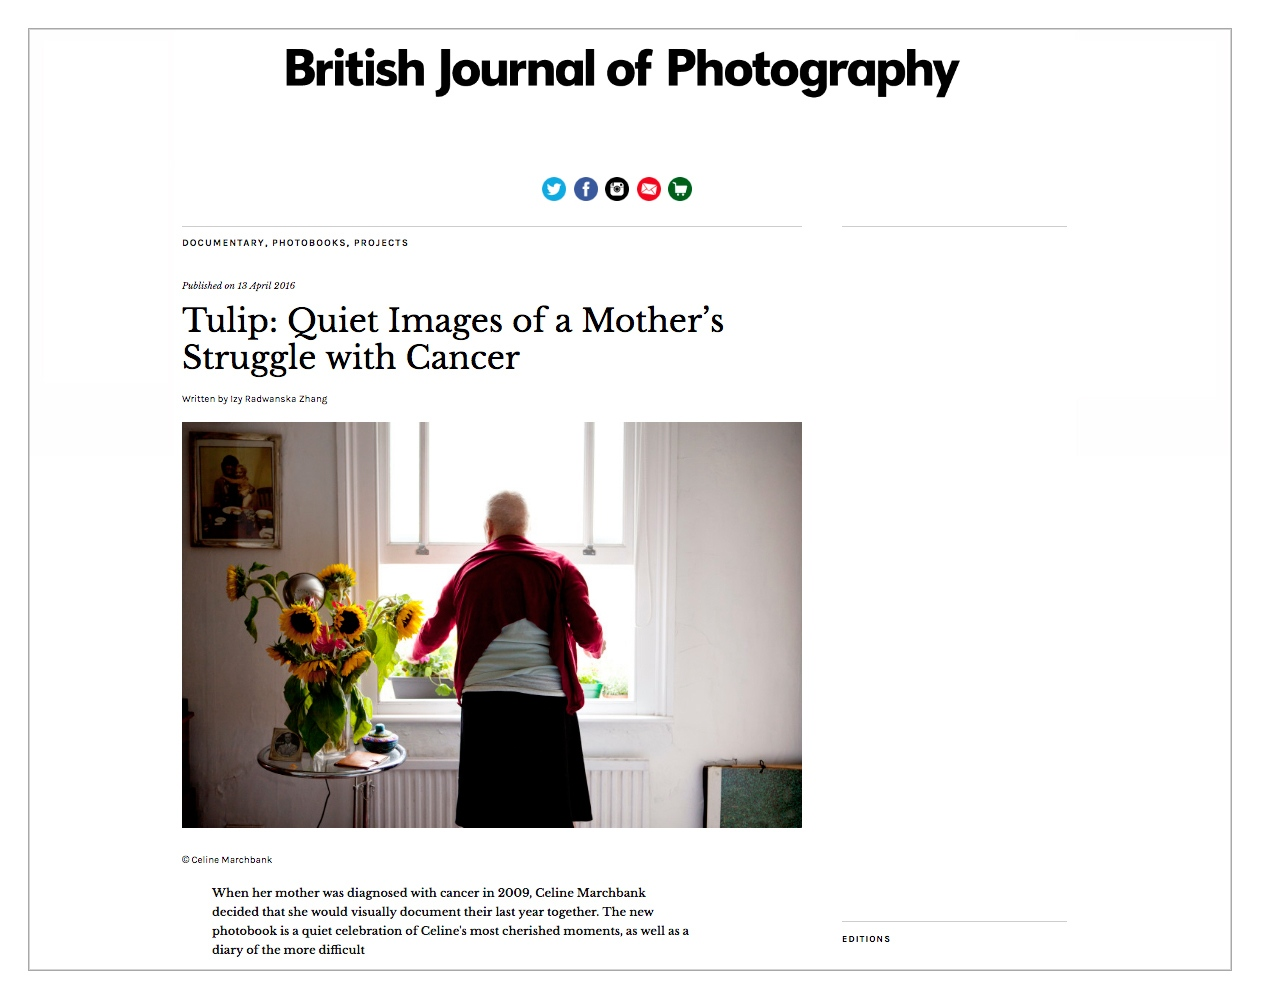 Britiah Journal of Photography feature.